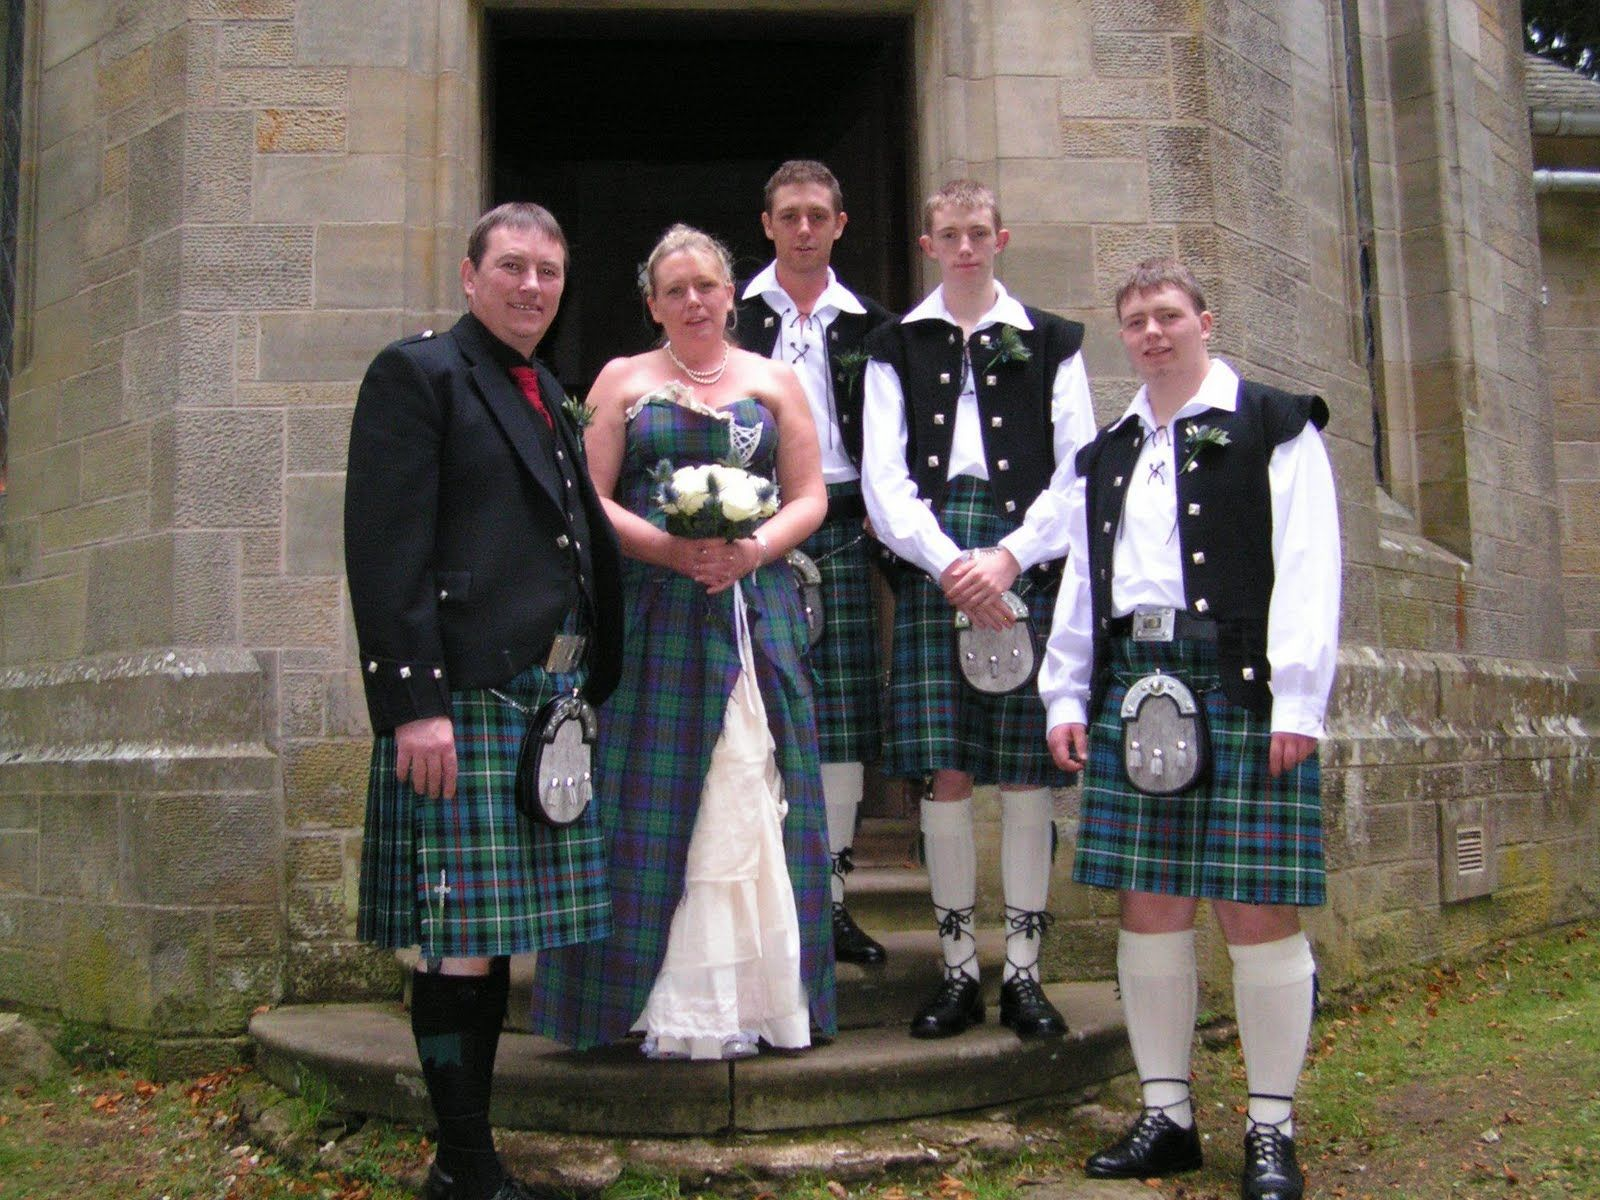 Traditional Wedding Dresses | Scottish wedding dresses, Wedding ...